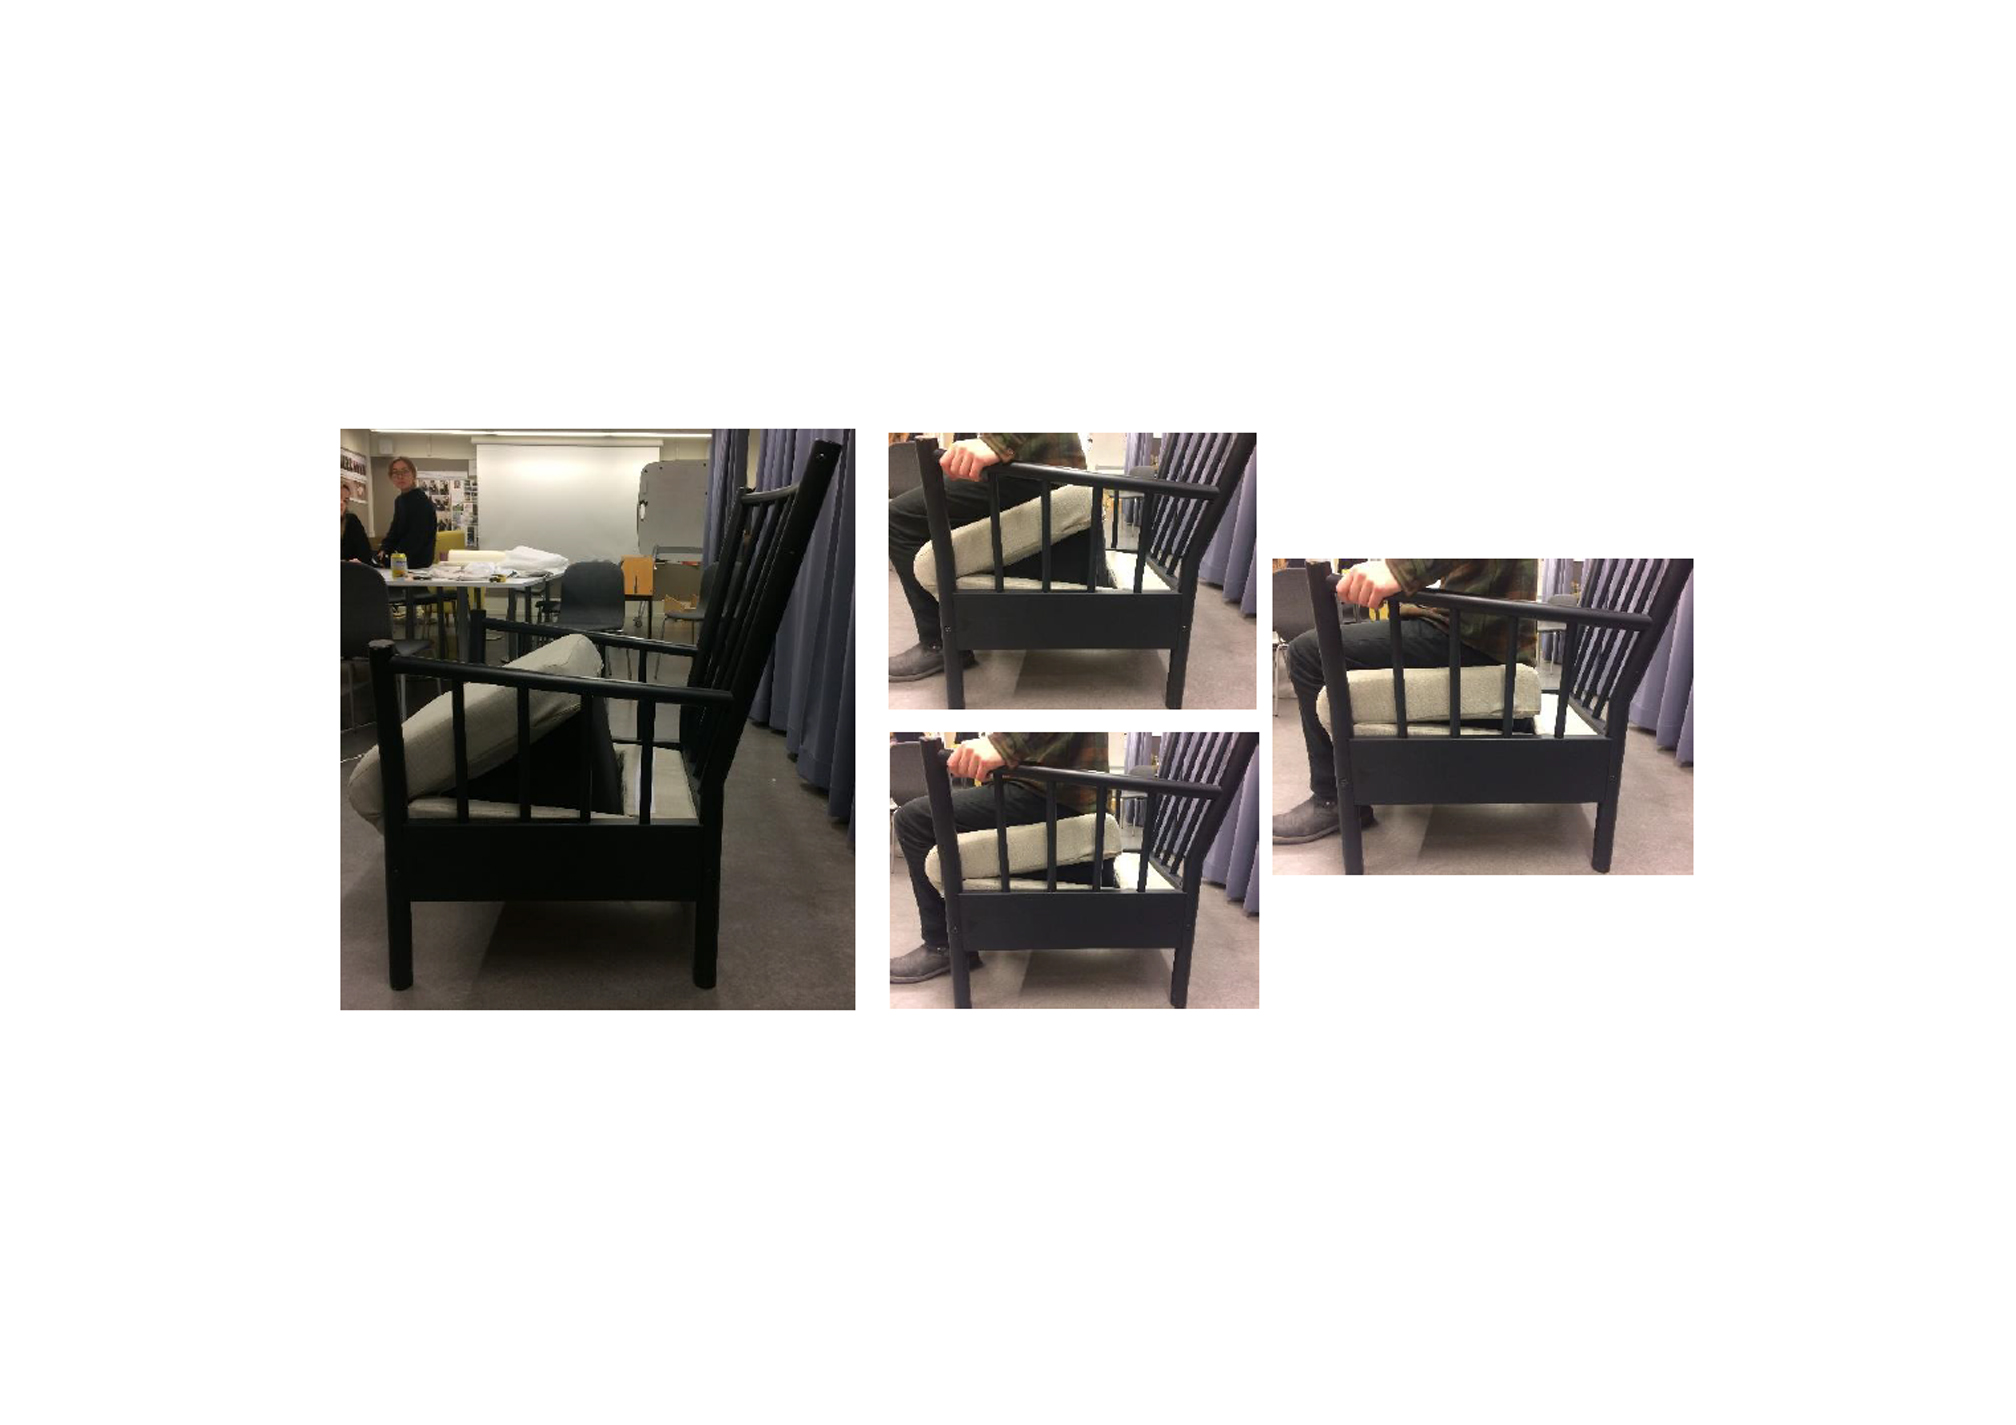 Several pictures showing how the cushion helps a person get up from an armchair